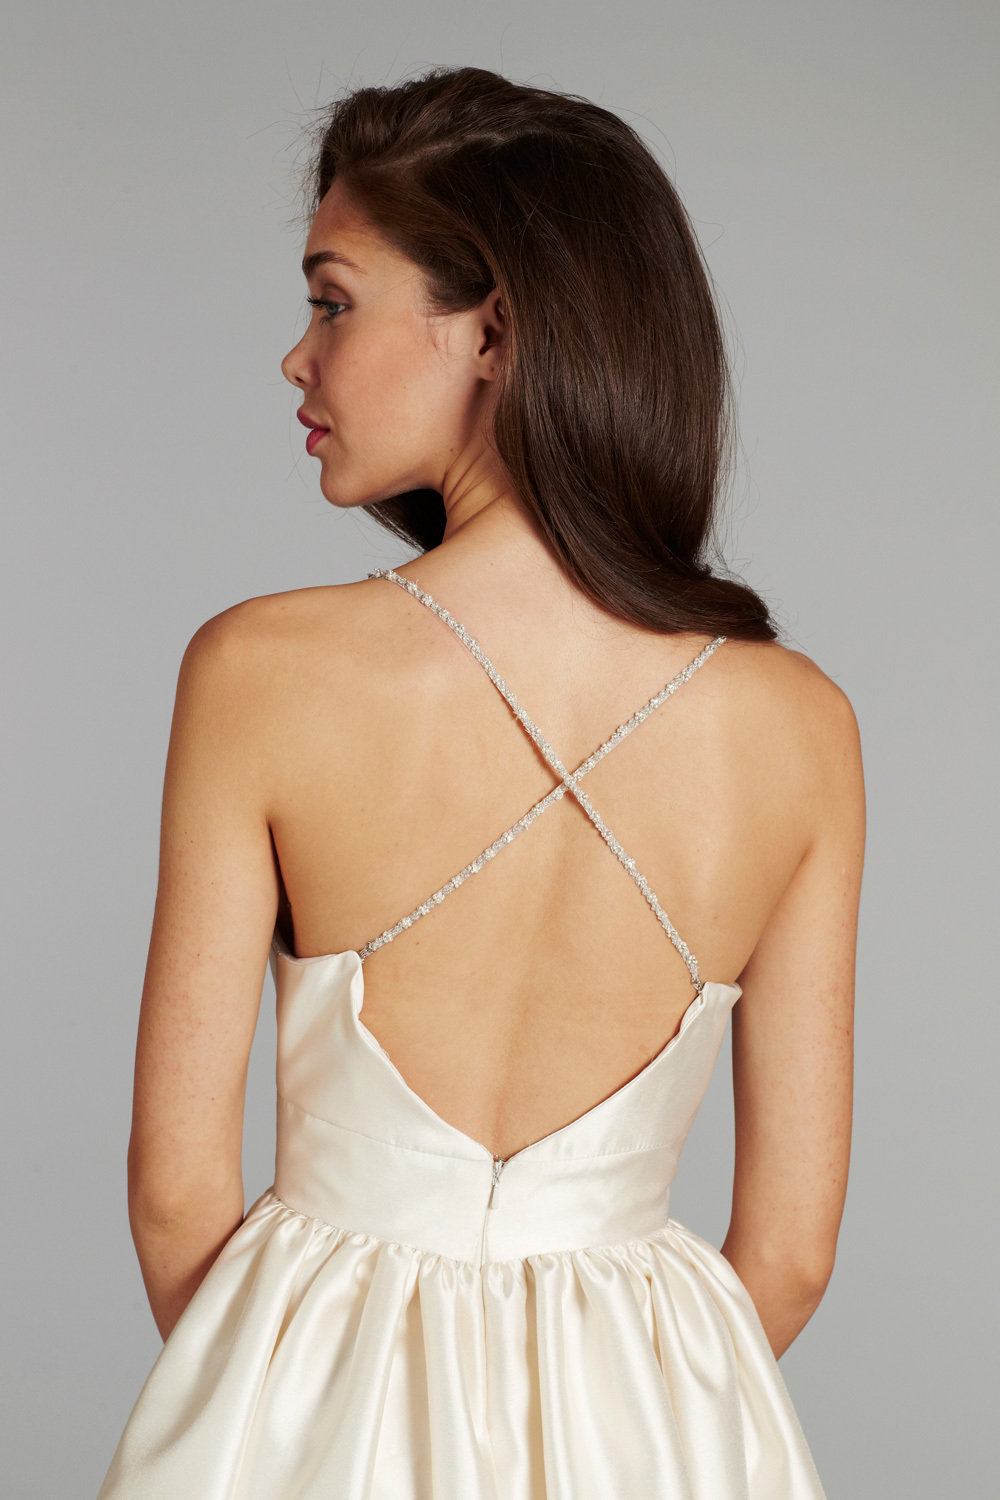 Bridal-gown-wedding-dress-jlm-hayley-paige-blush-fall-2012-maple-detail.full